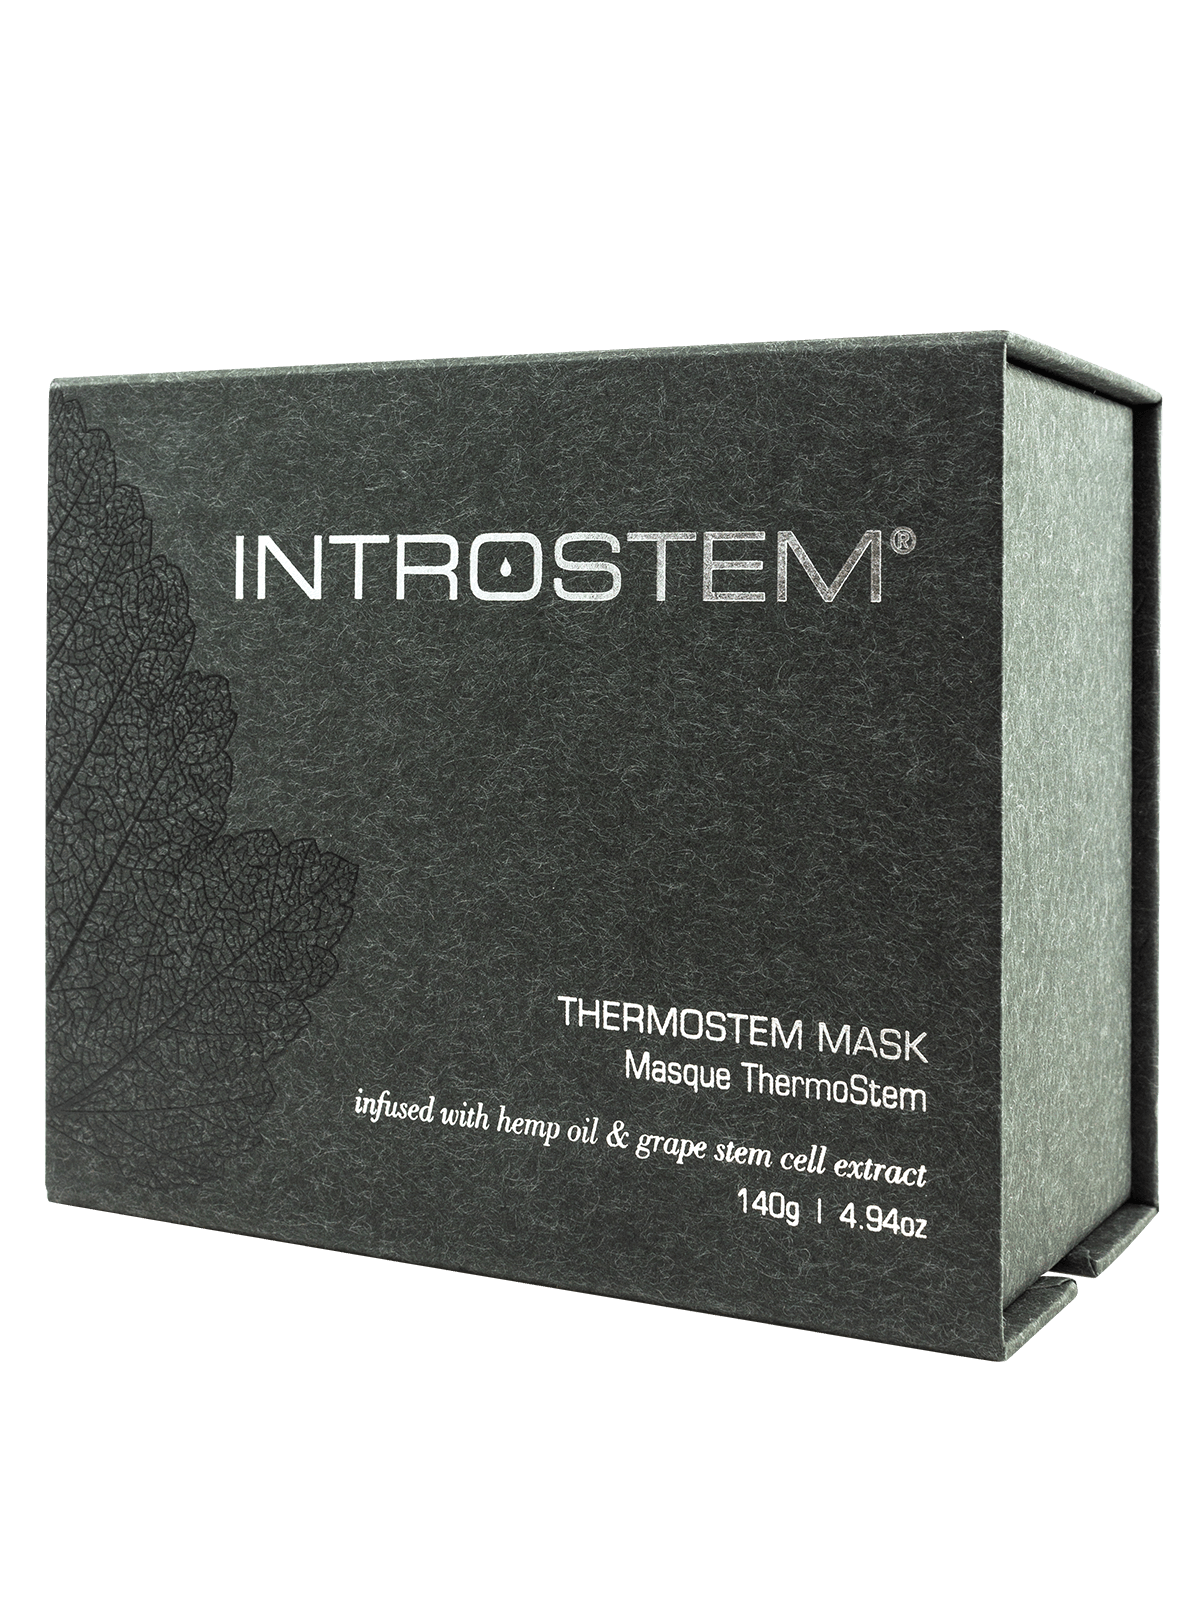 Thermostem Mask in its case